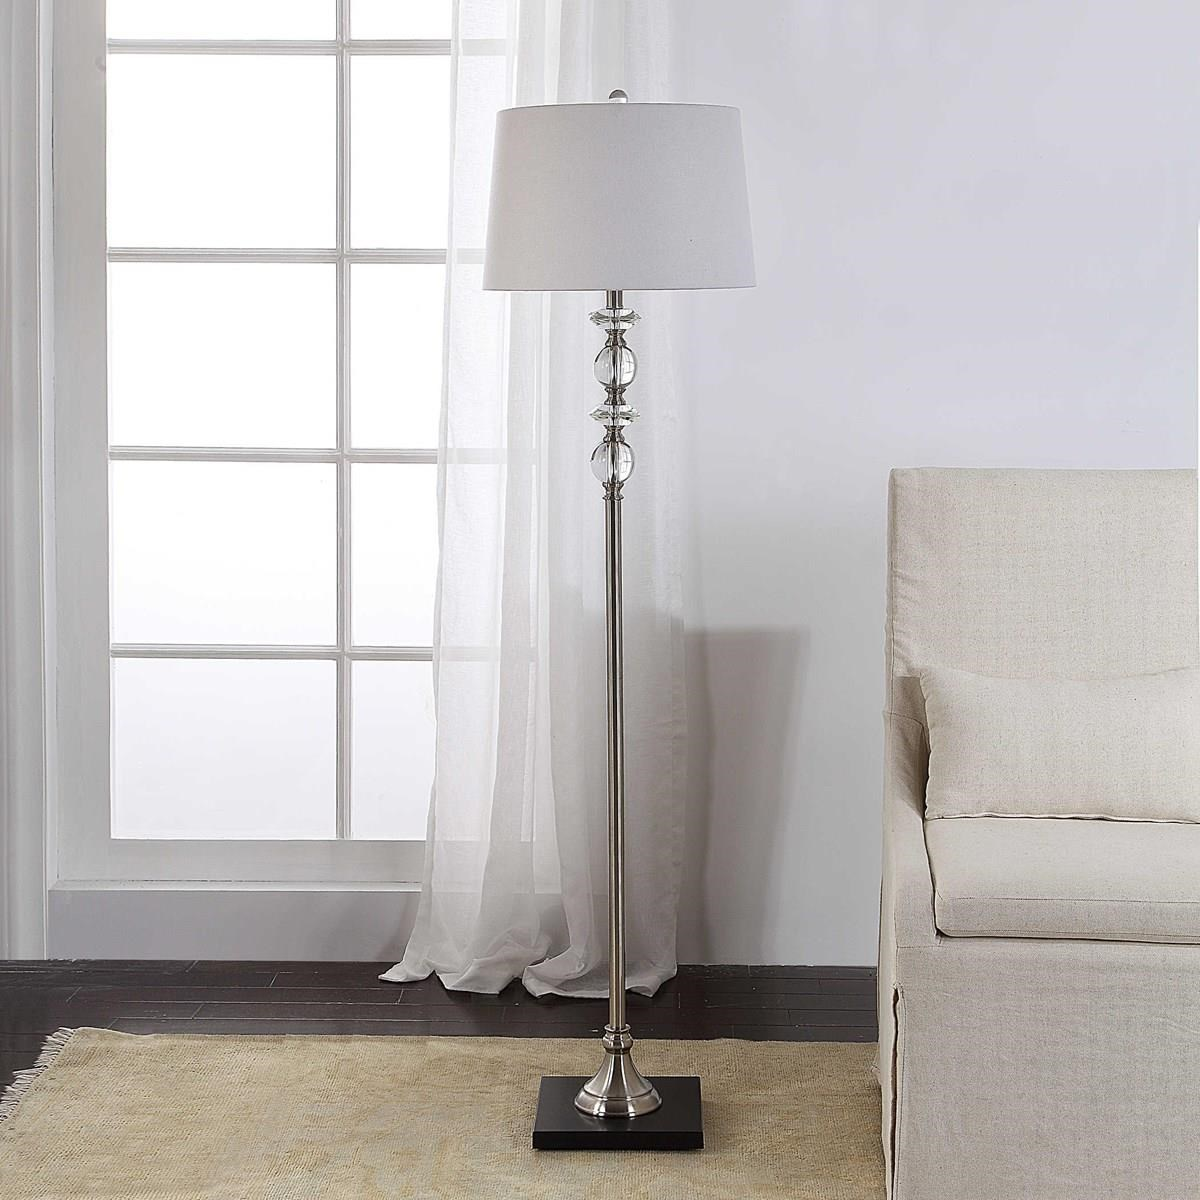 Floor Lamps MARY FLOOR LAMP by Unique at Walker's Furniture